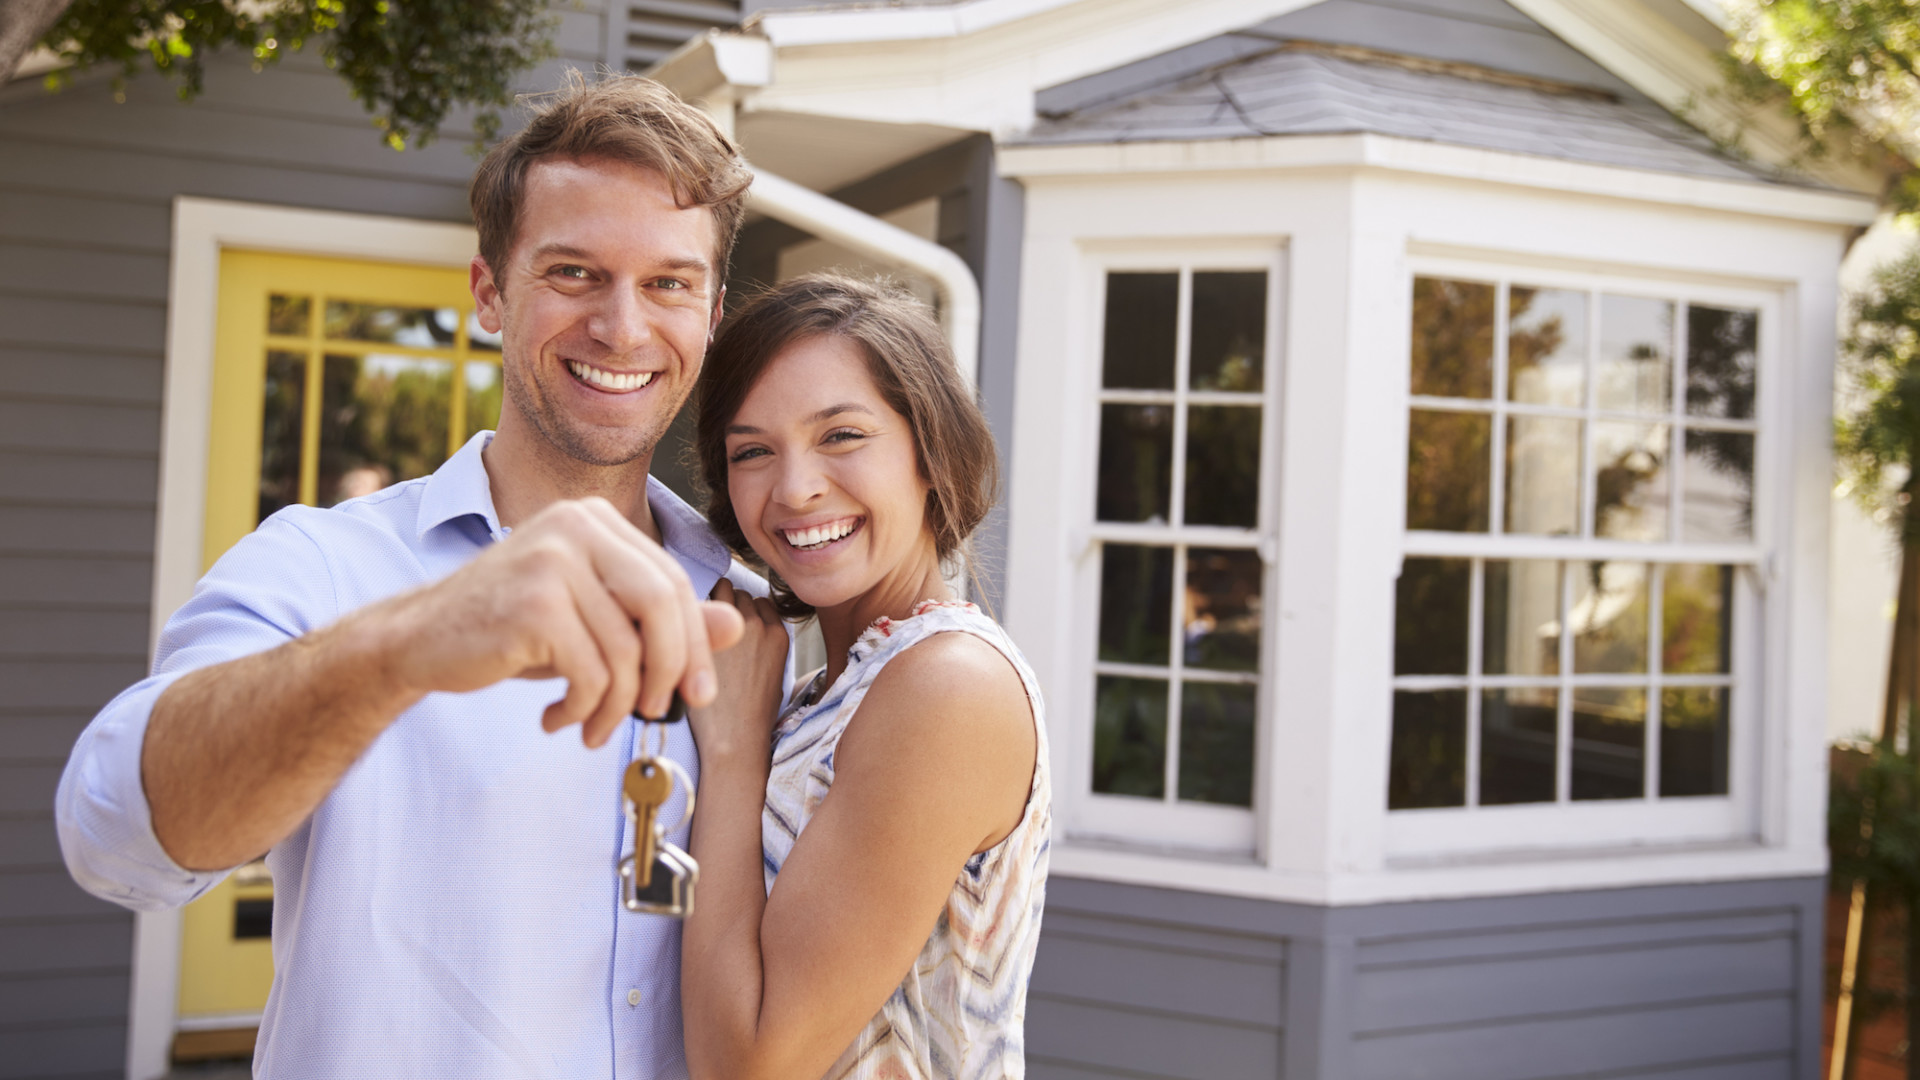 <style> v {   text-shadow: 2px 2px 8px #1e2a55; } </style><v>Mortgages For First Time Buyers - Remortgage Your Home - Buy to Let Mortgages</v>